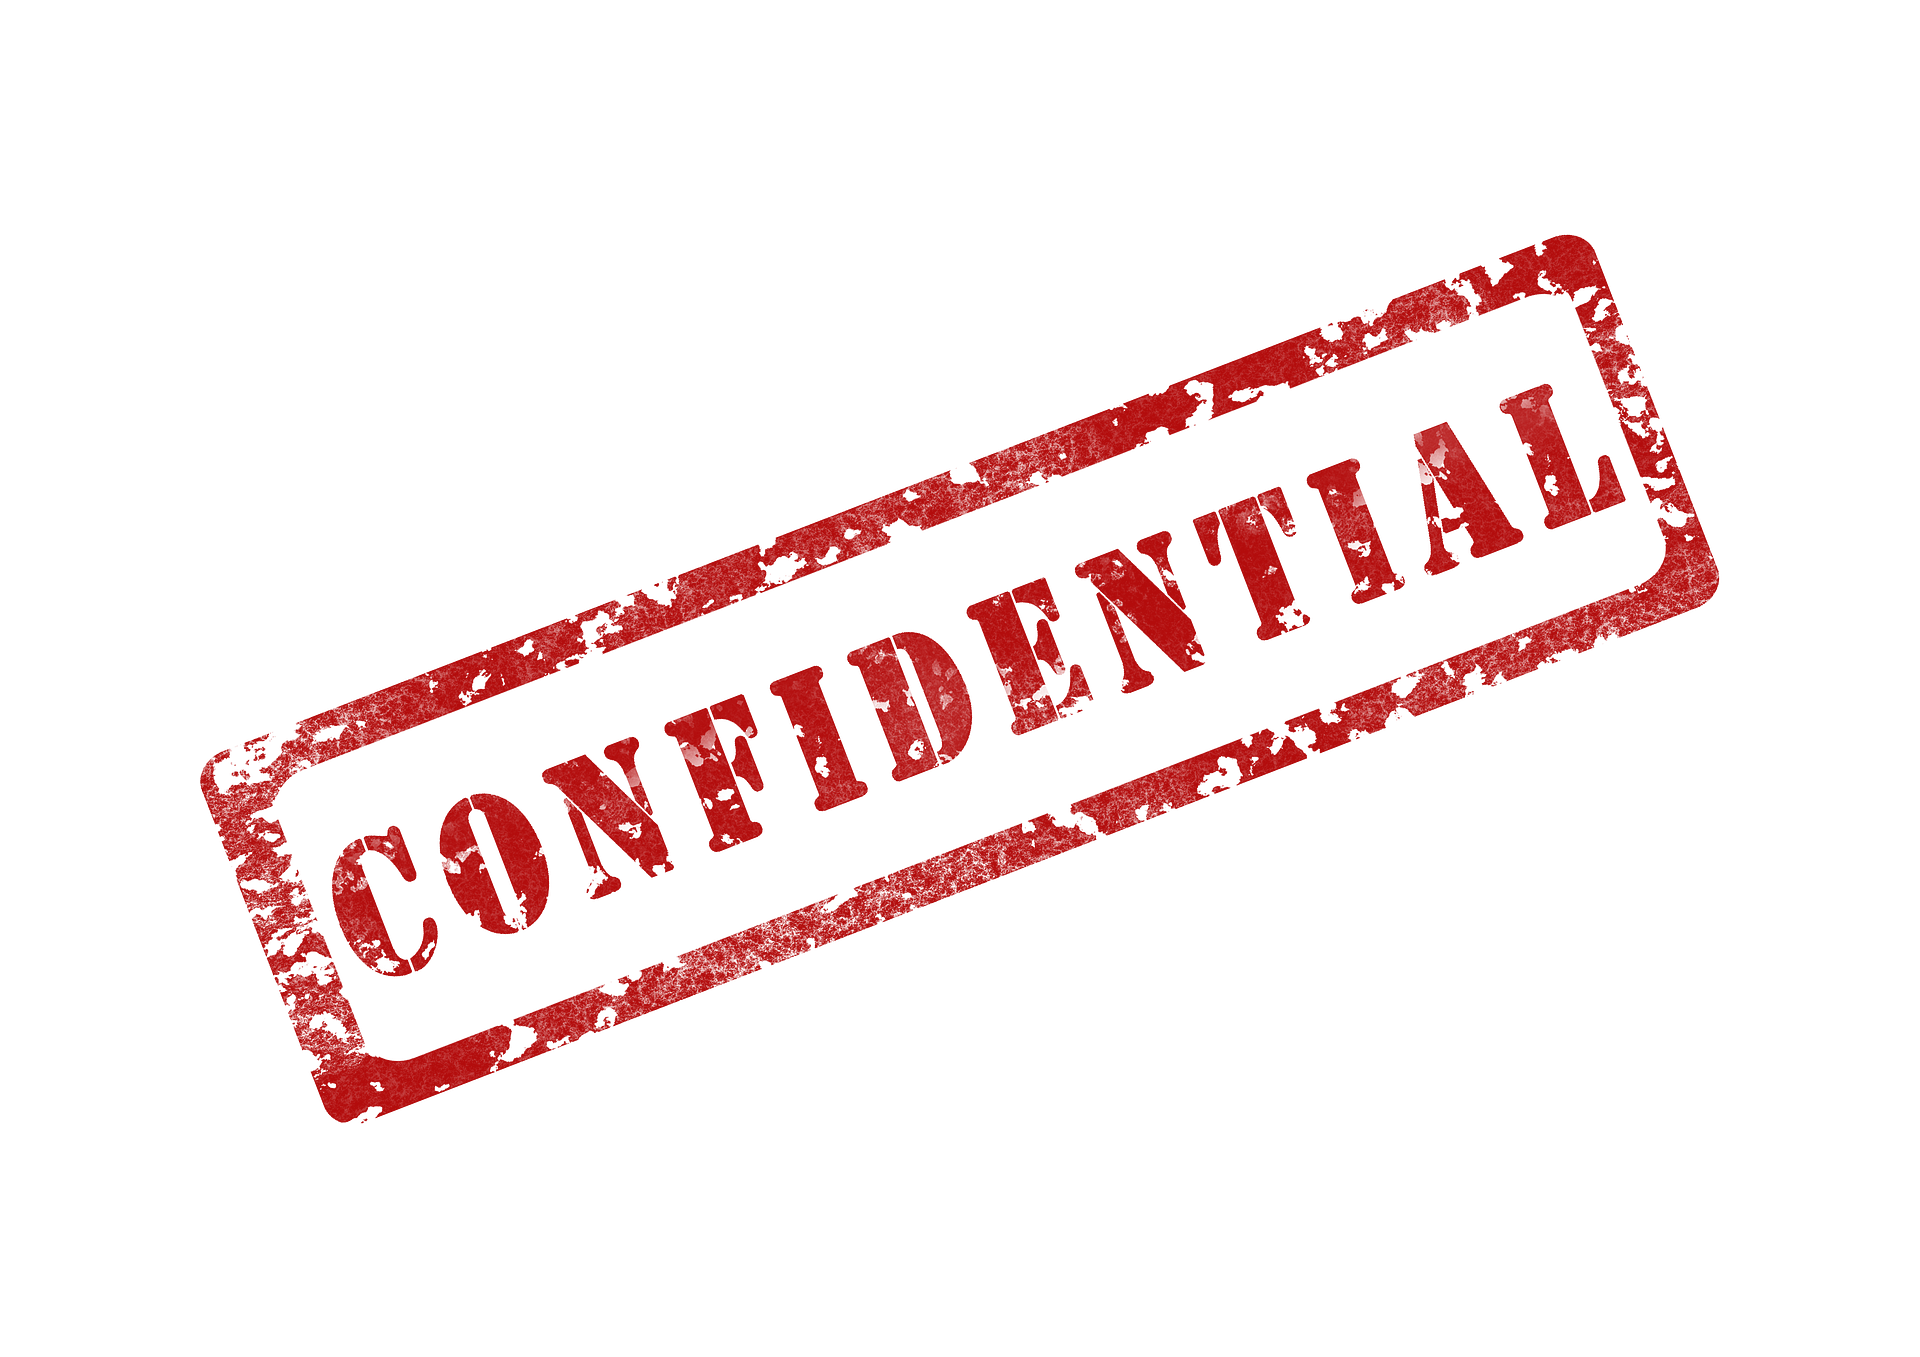 Confidential stamp png. Information april onthemarch co